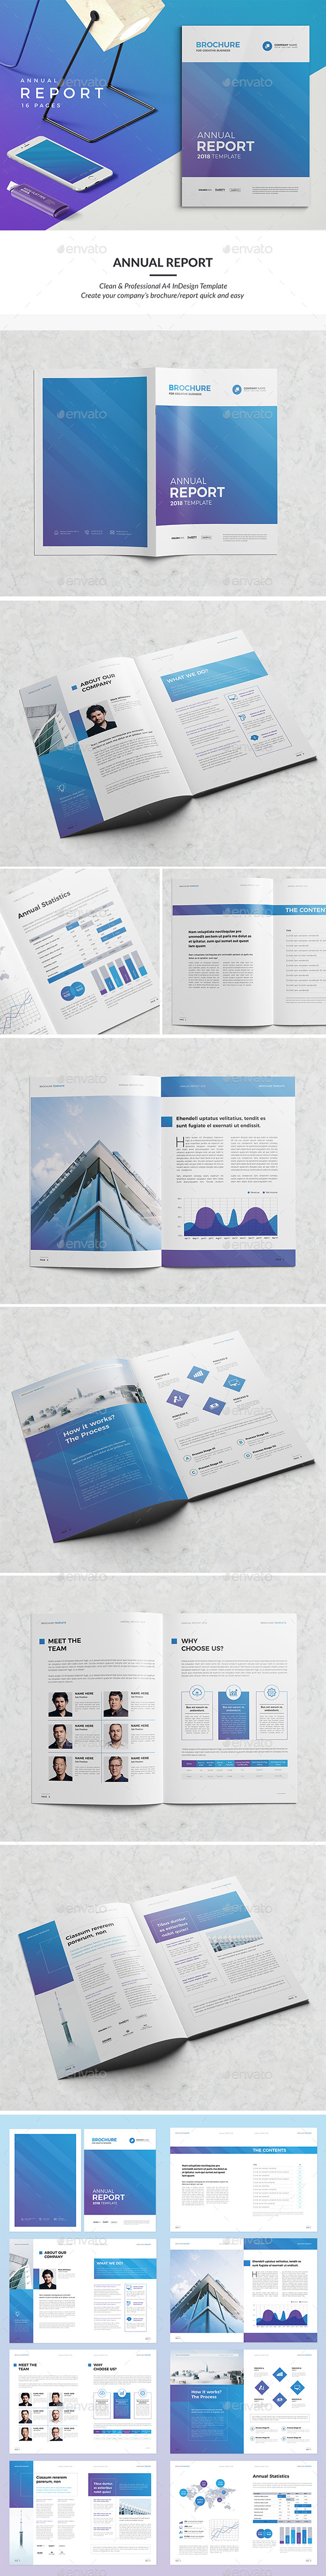 Clean #Annual Report 16 Pages - Corporate #Brochures Download here:  https://graphicriver.net/item/clean-annual-report-16-pages/20353522?ref=alena994